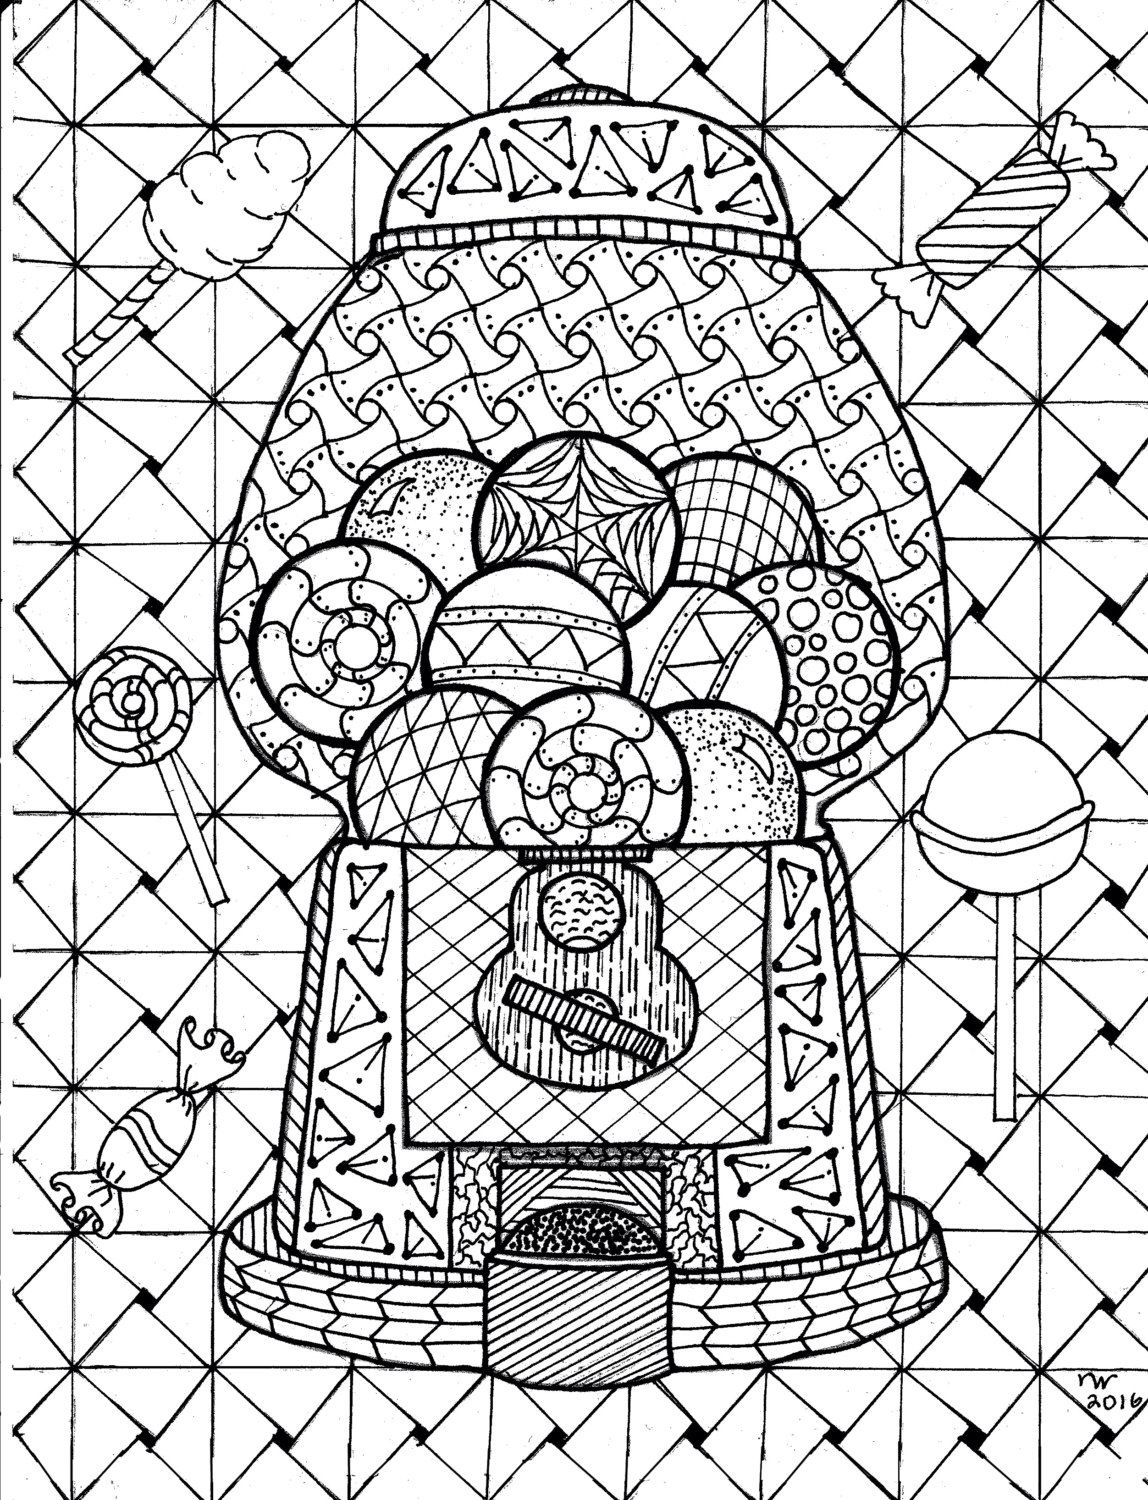 Gumball Machine Zentangle Coloring